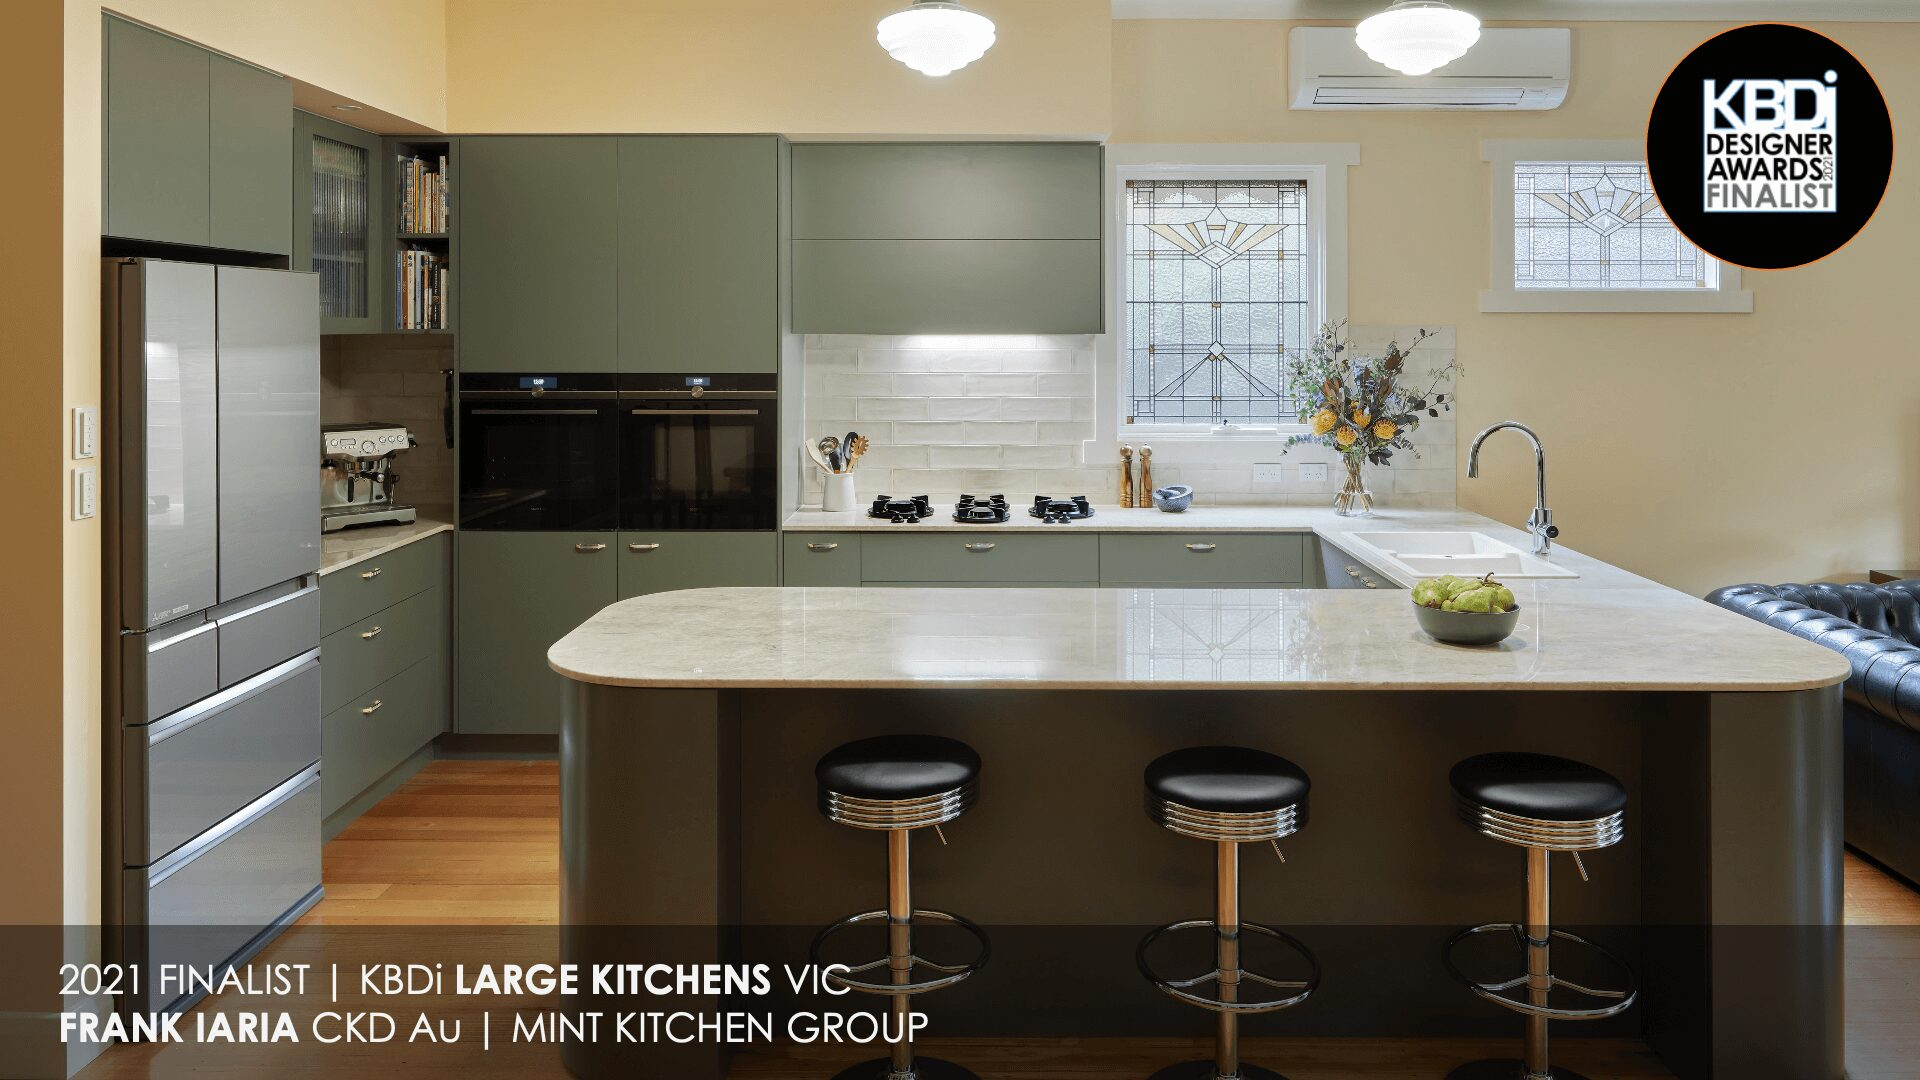 A_25_Frank Iaria_Large Kitchens_VIC